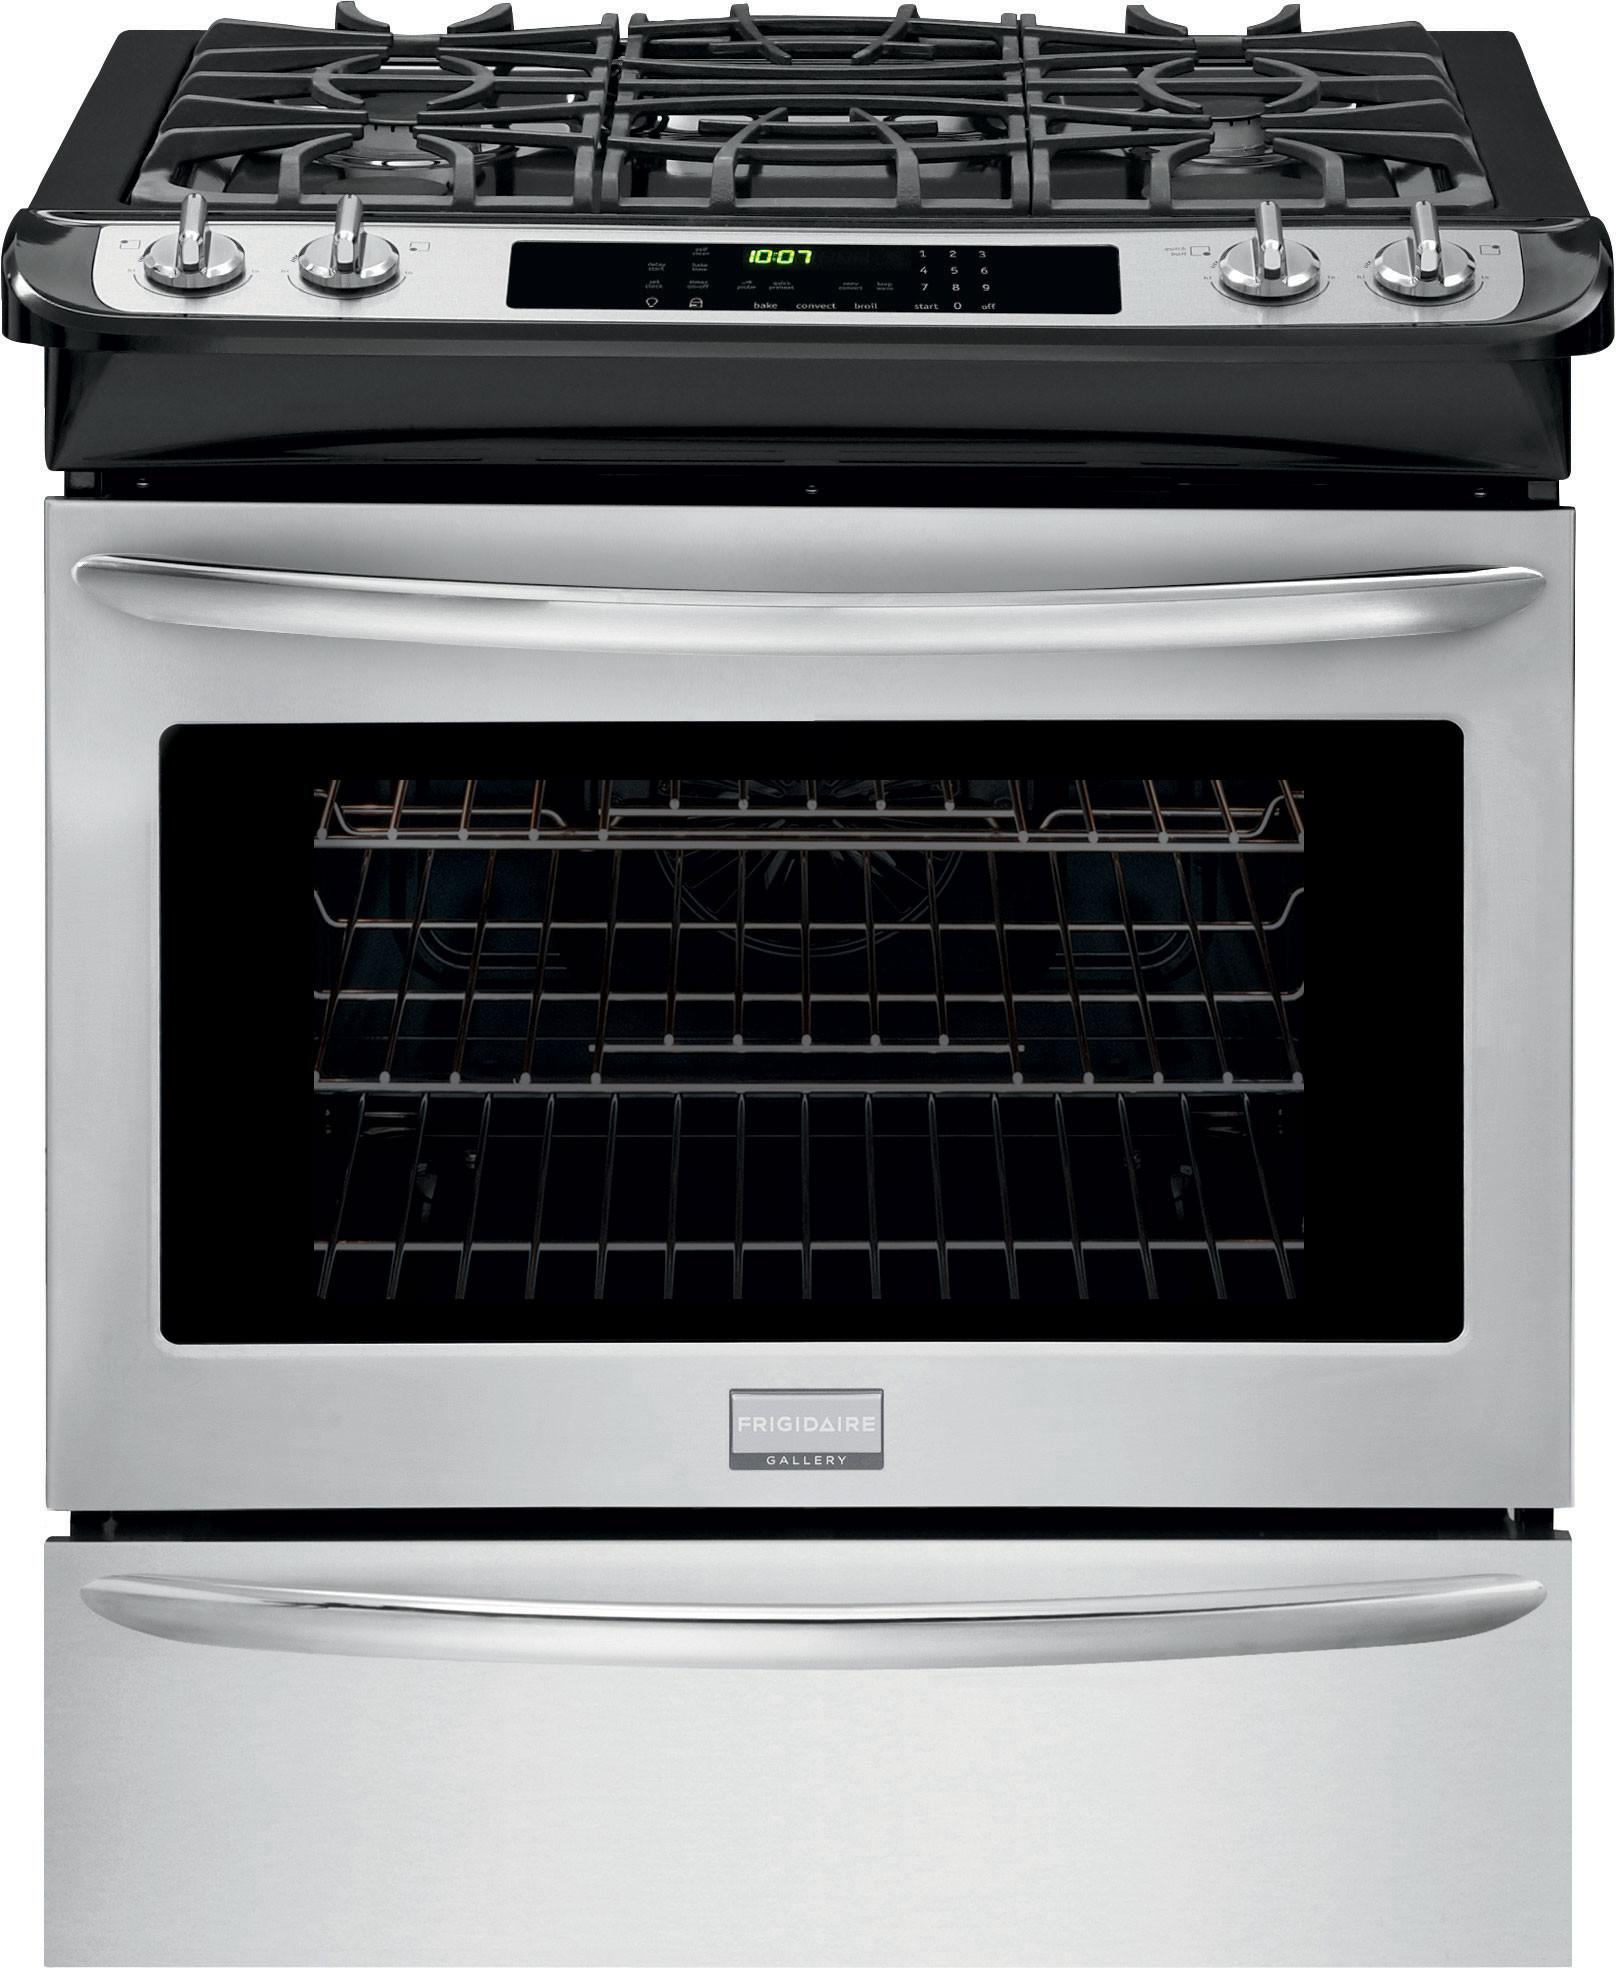 Frigidaire Countertop Electric Stove : Frigidaire FGGS3065PF 30 Inch Slide-in Gas Range with 4.5 cu. ft. Oven ...